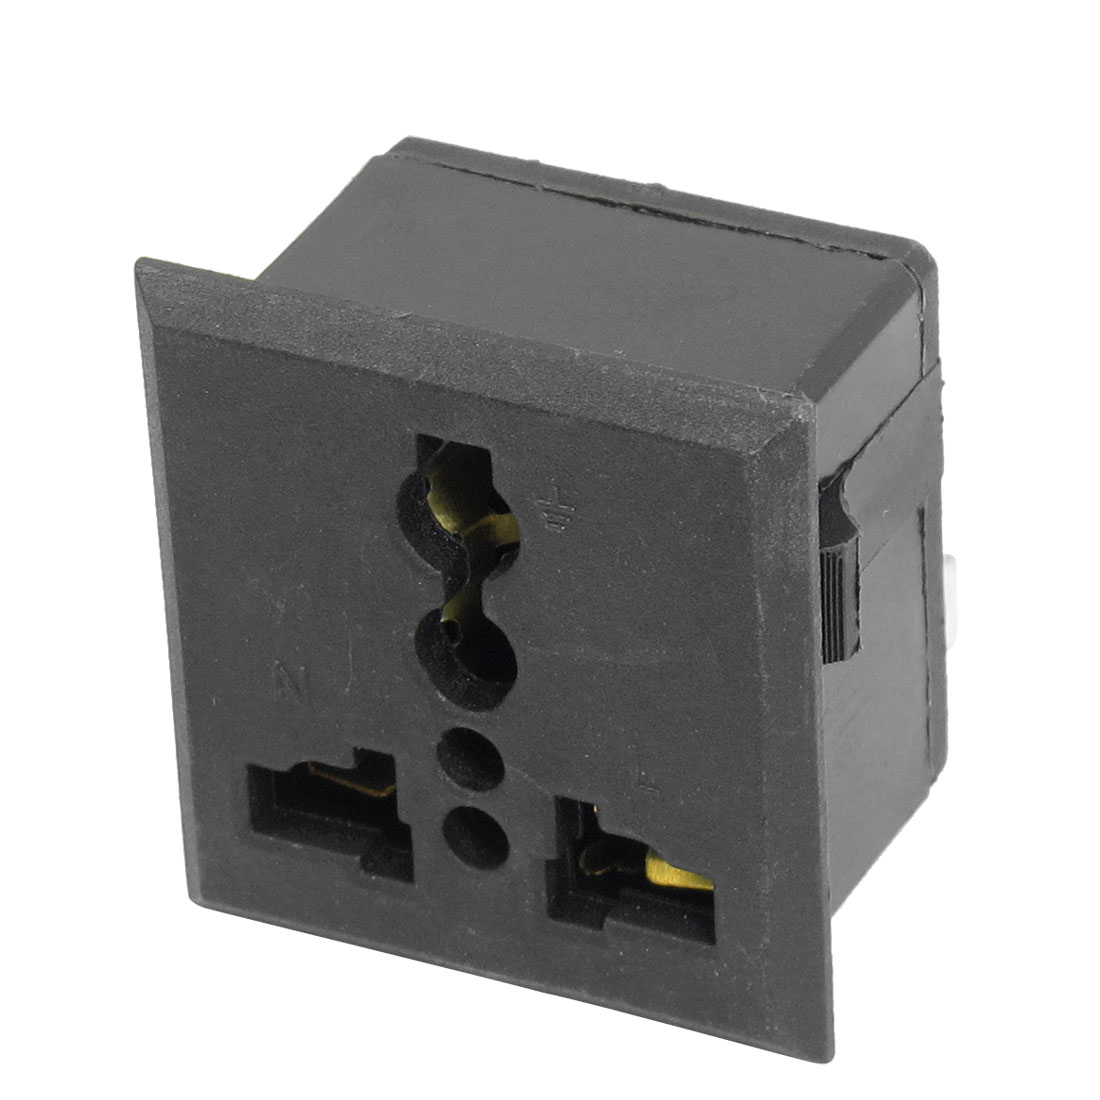 AC 250V 13A Universal US UK EU AU Panel Power Socket Outlet Black